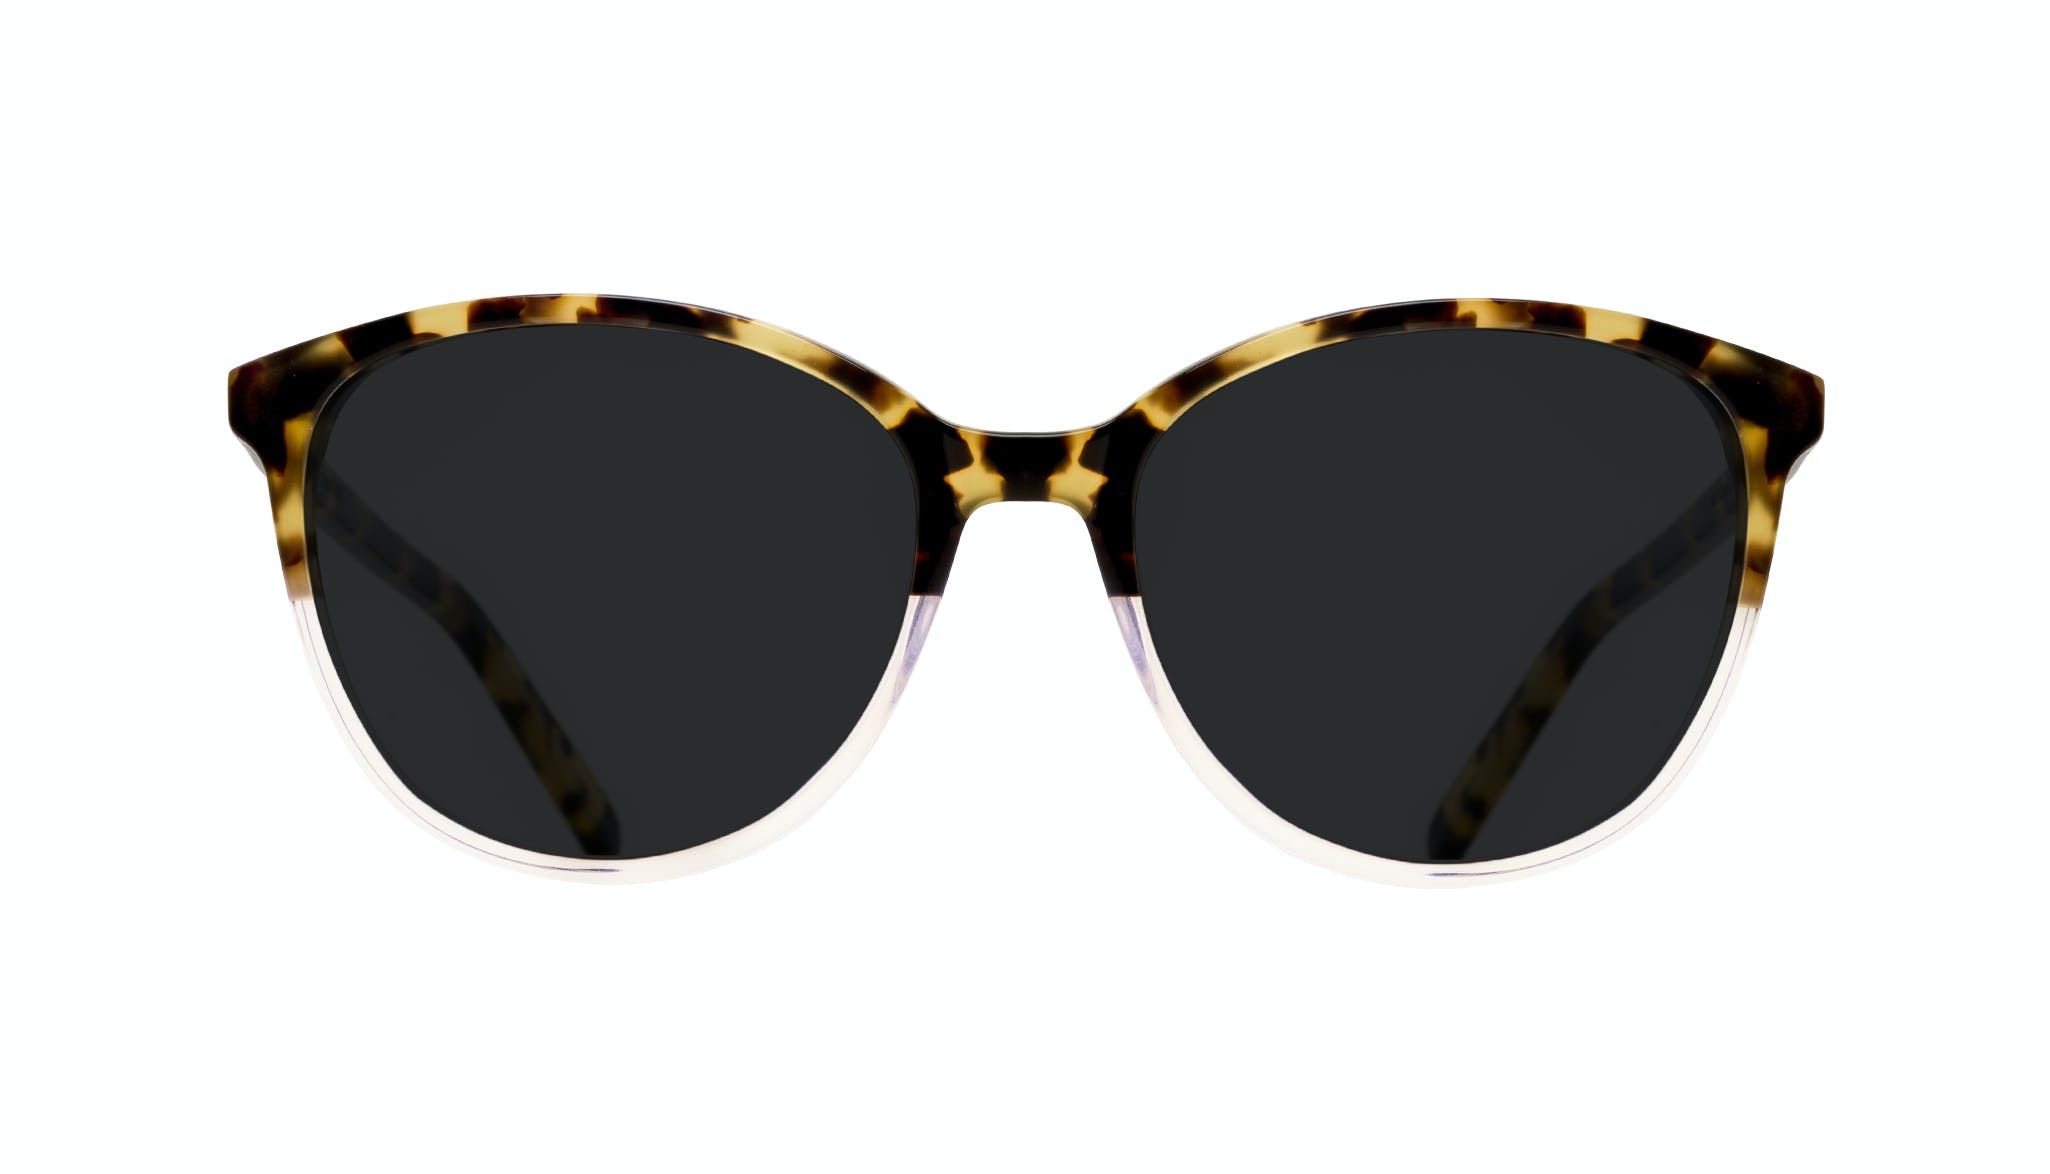 Affordable Fashion Glasses Cat Eye Round Sunglasses Women Imagine Blond Tort Front